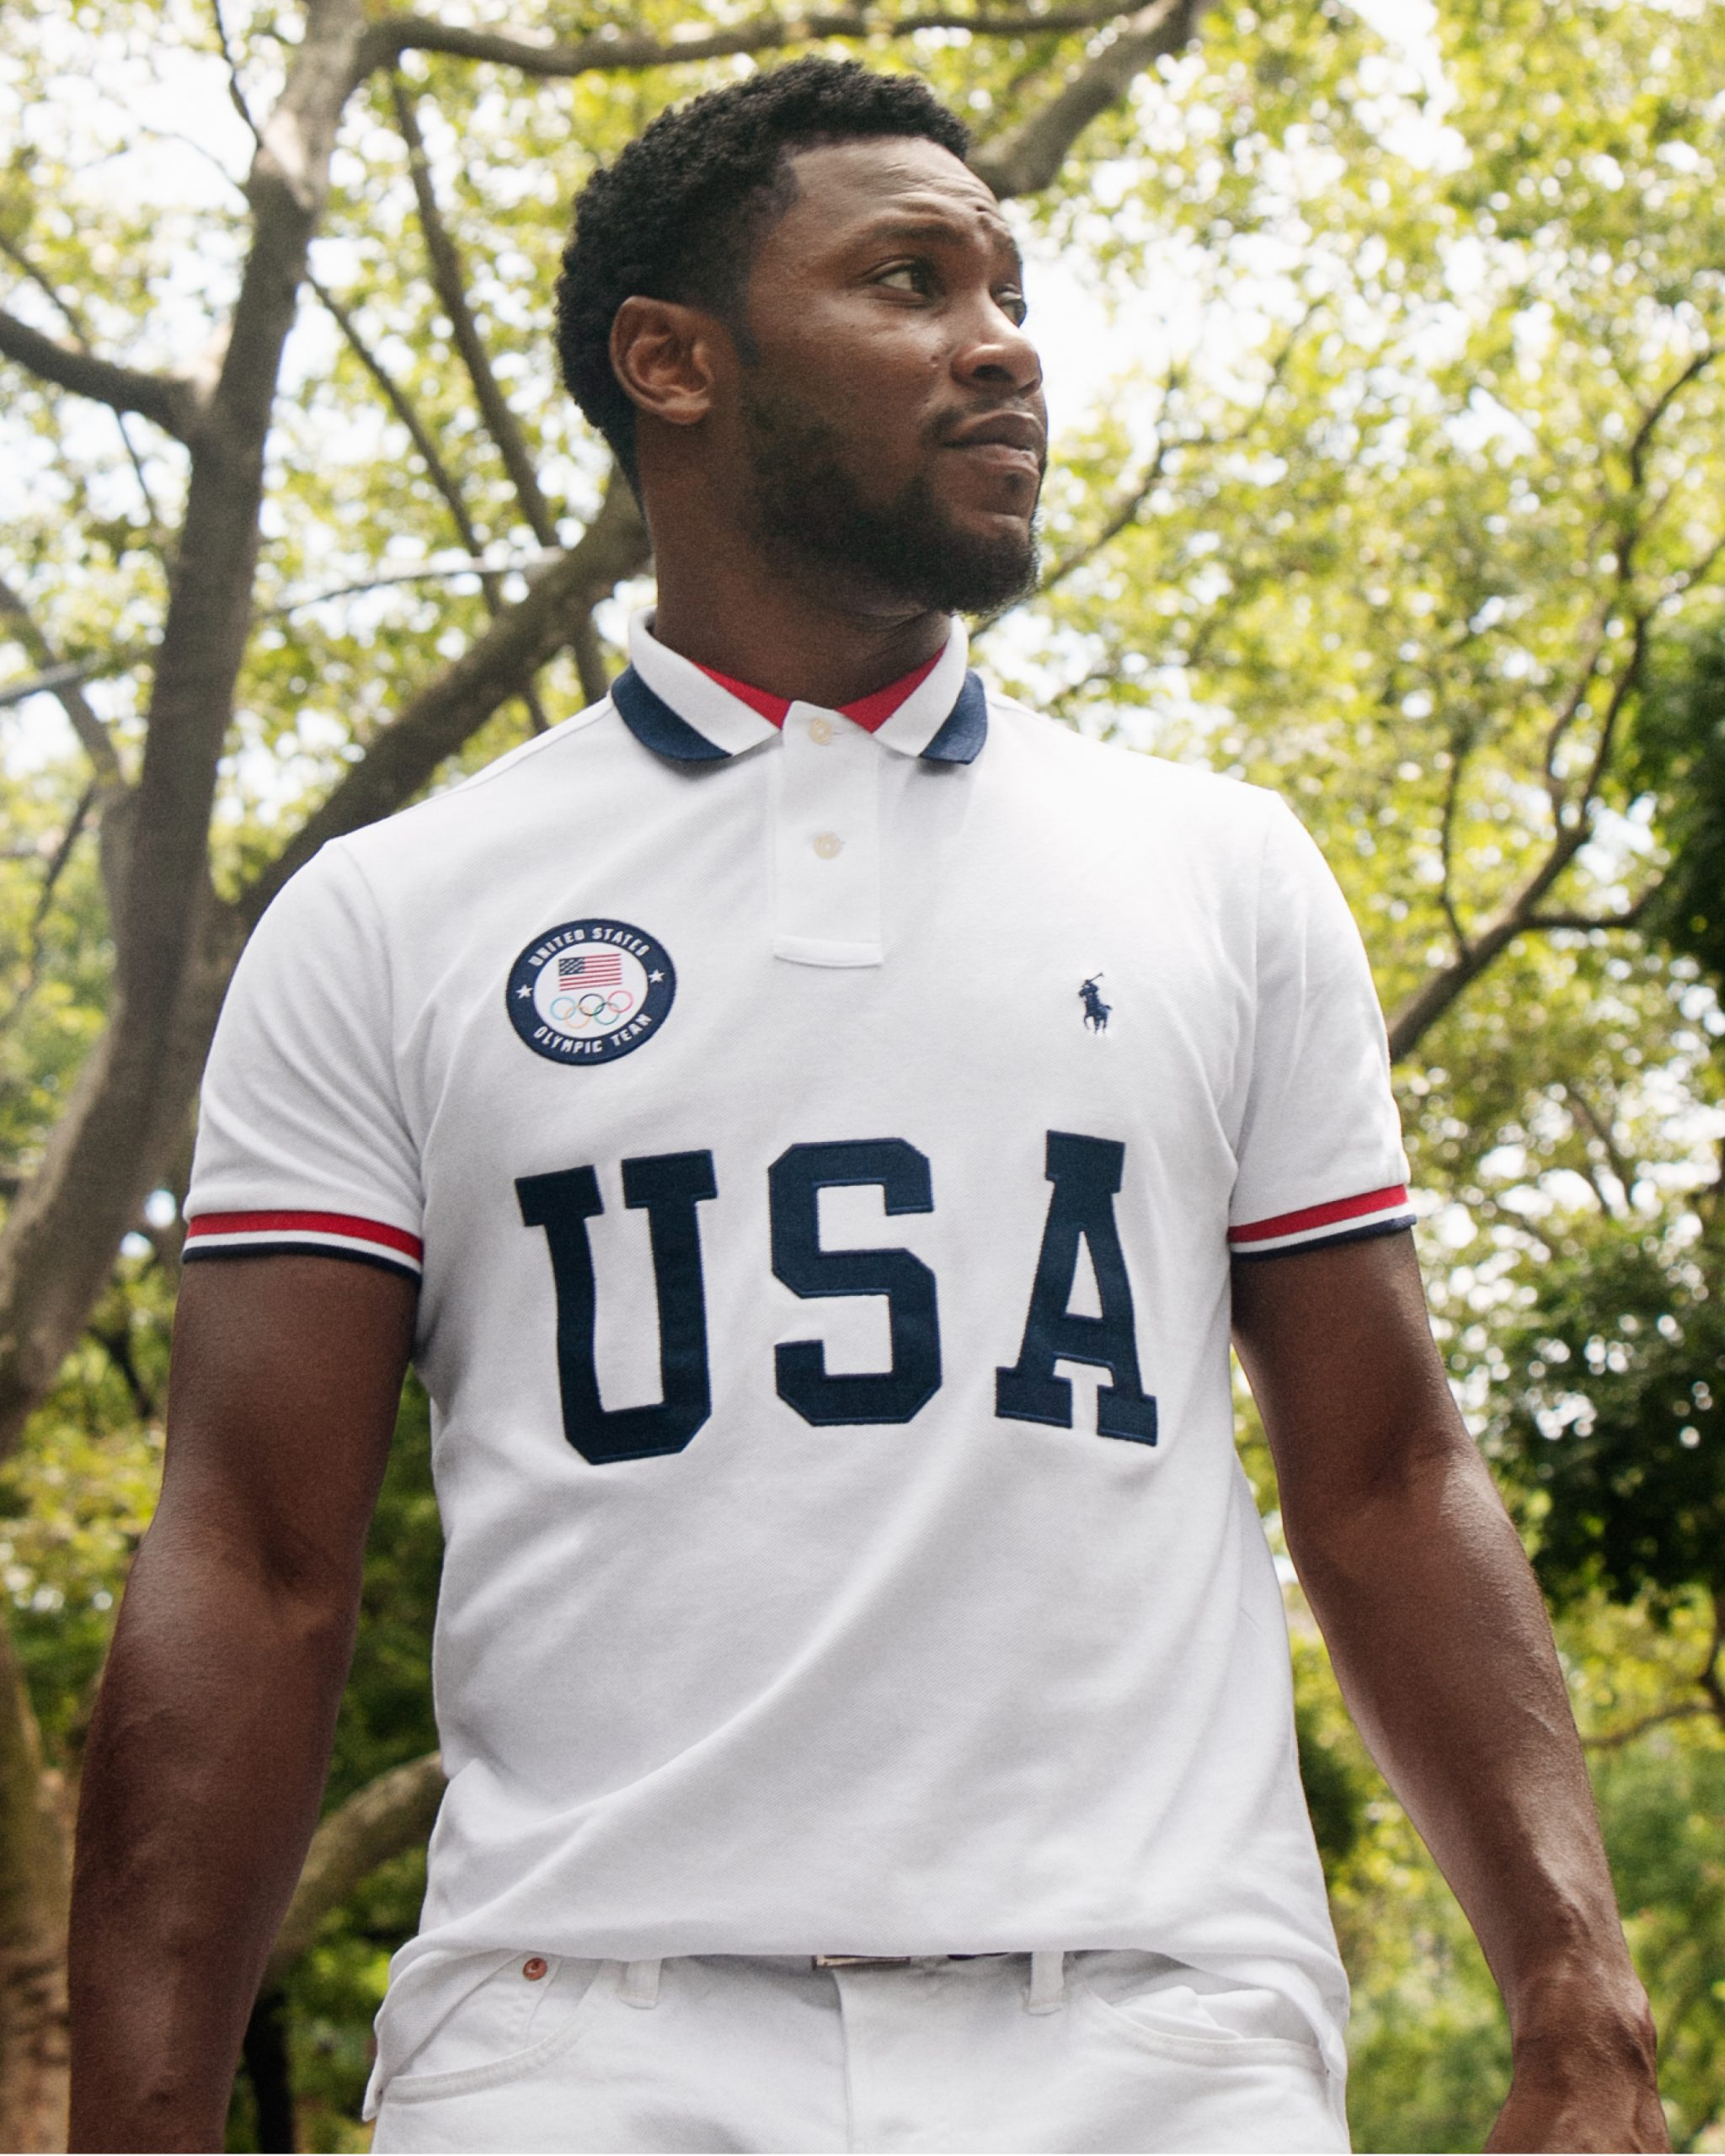 Ralph Lauren Launches Collection To Support U.S. Olympic and Paralympic Athletes